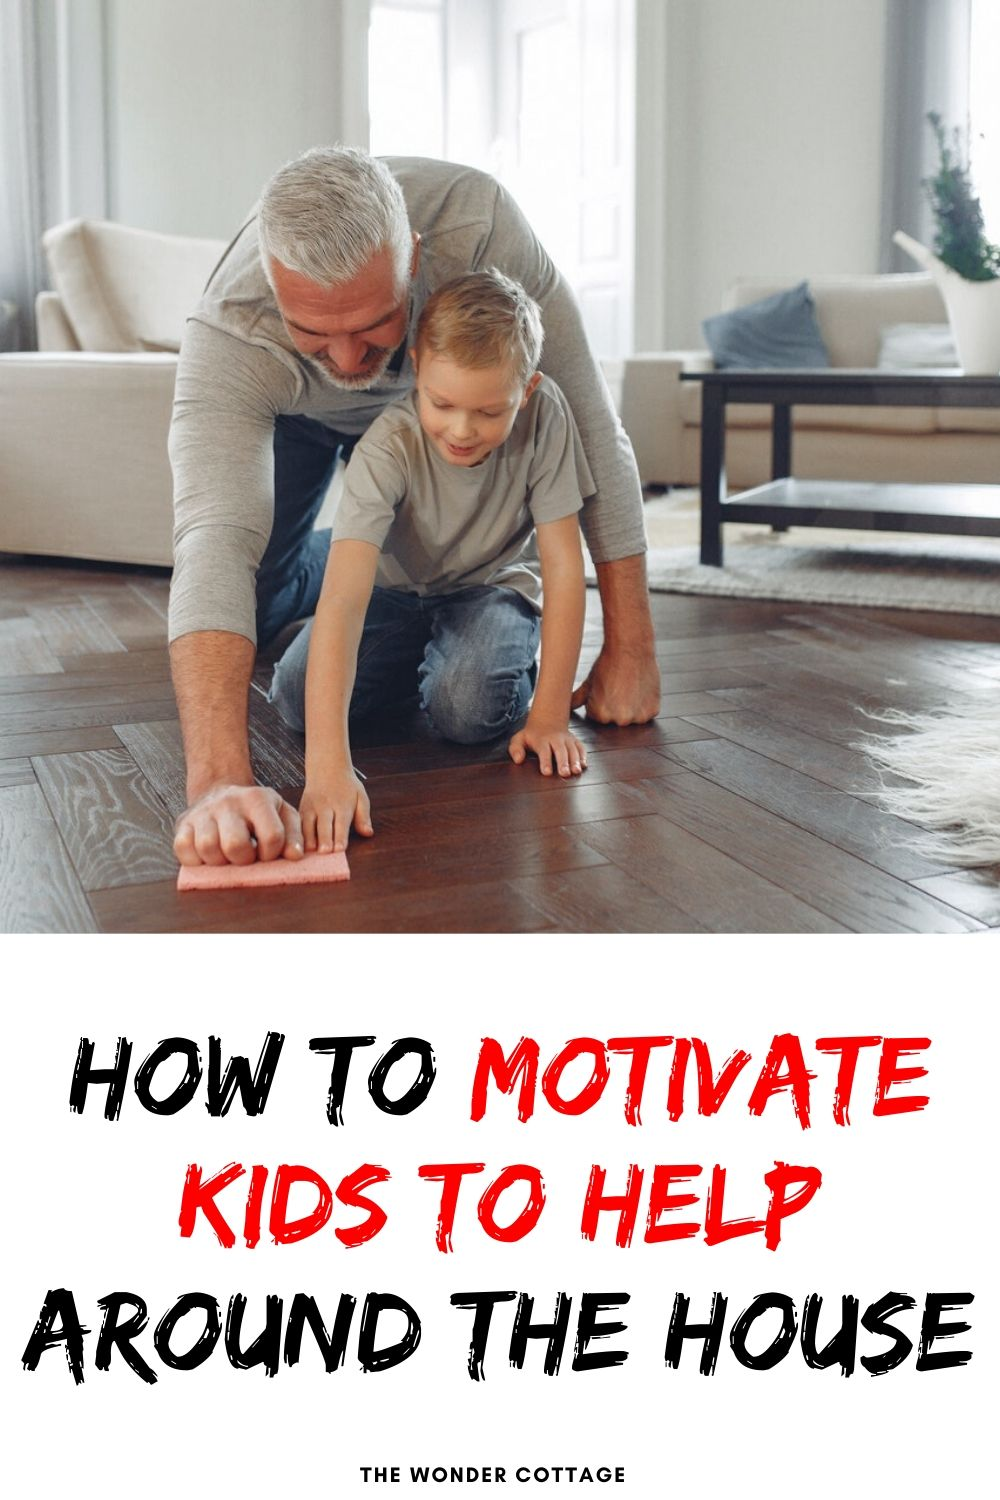 how to motivate kids to help around the house